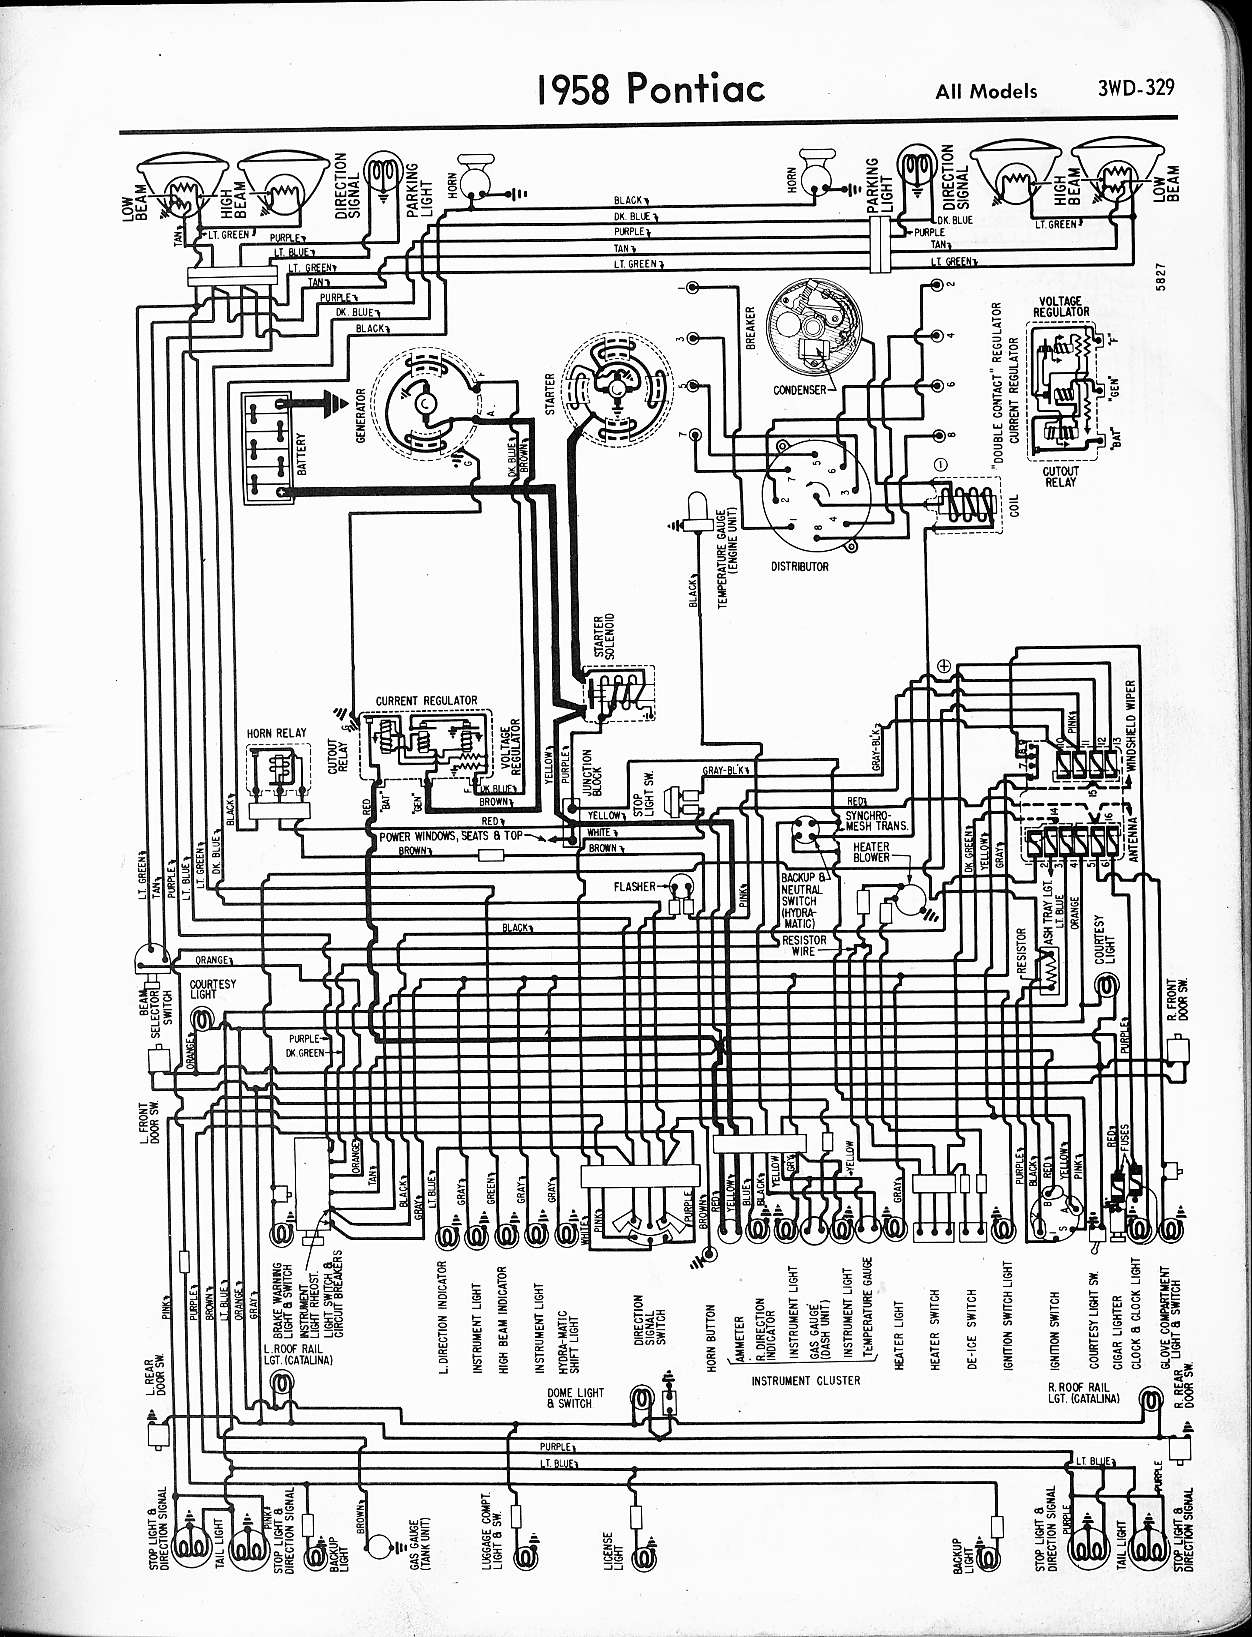 07 pontiac g6 stereo wiring diagram benefits of network in project management g5 library